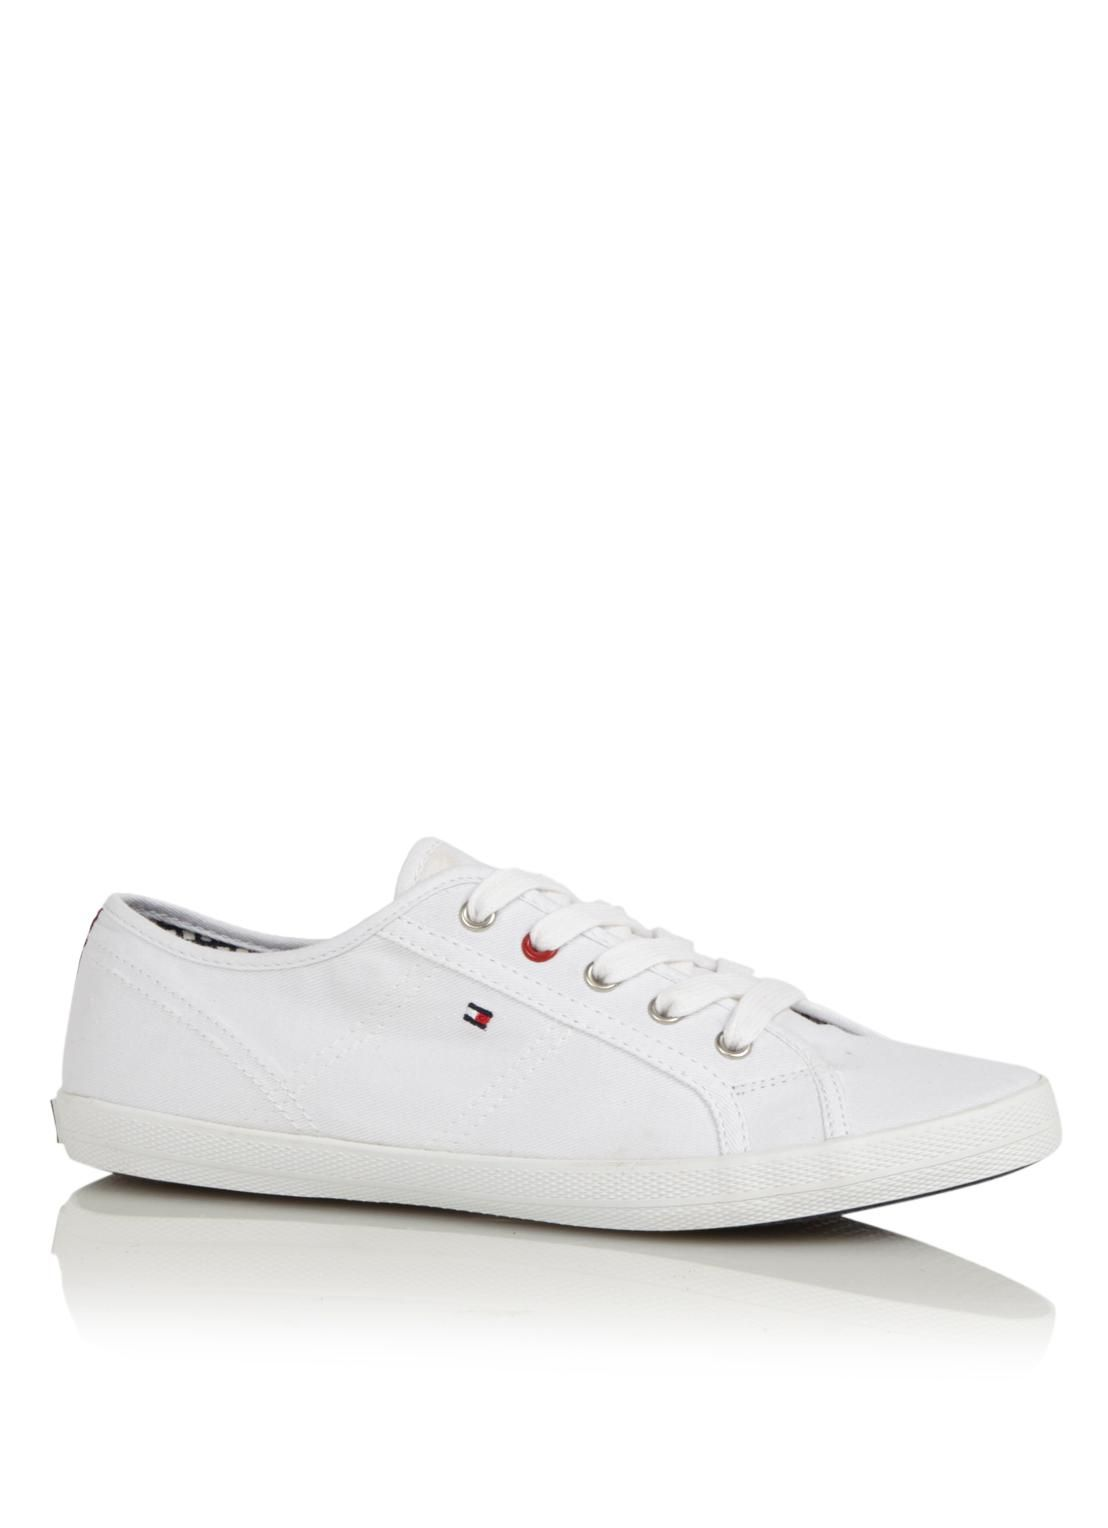 zapatos thommy vans plataforma